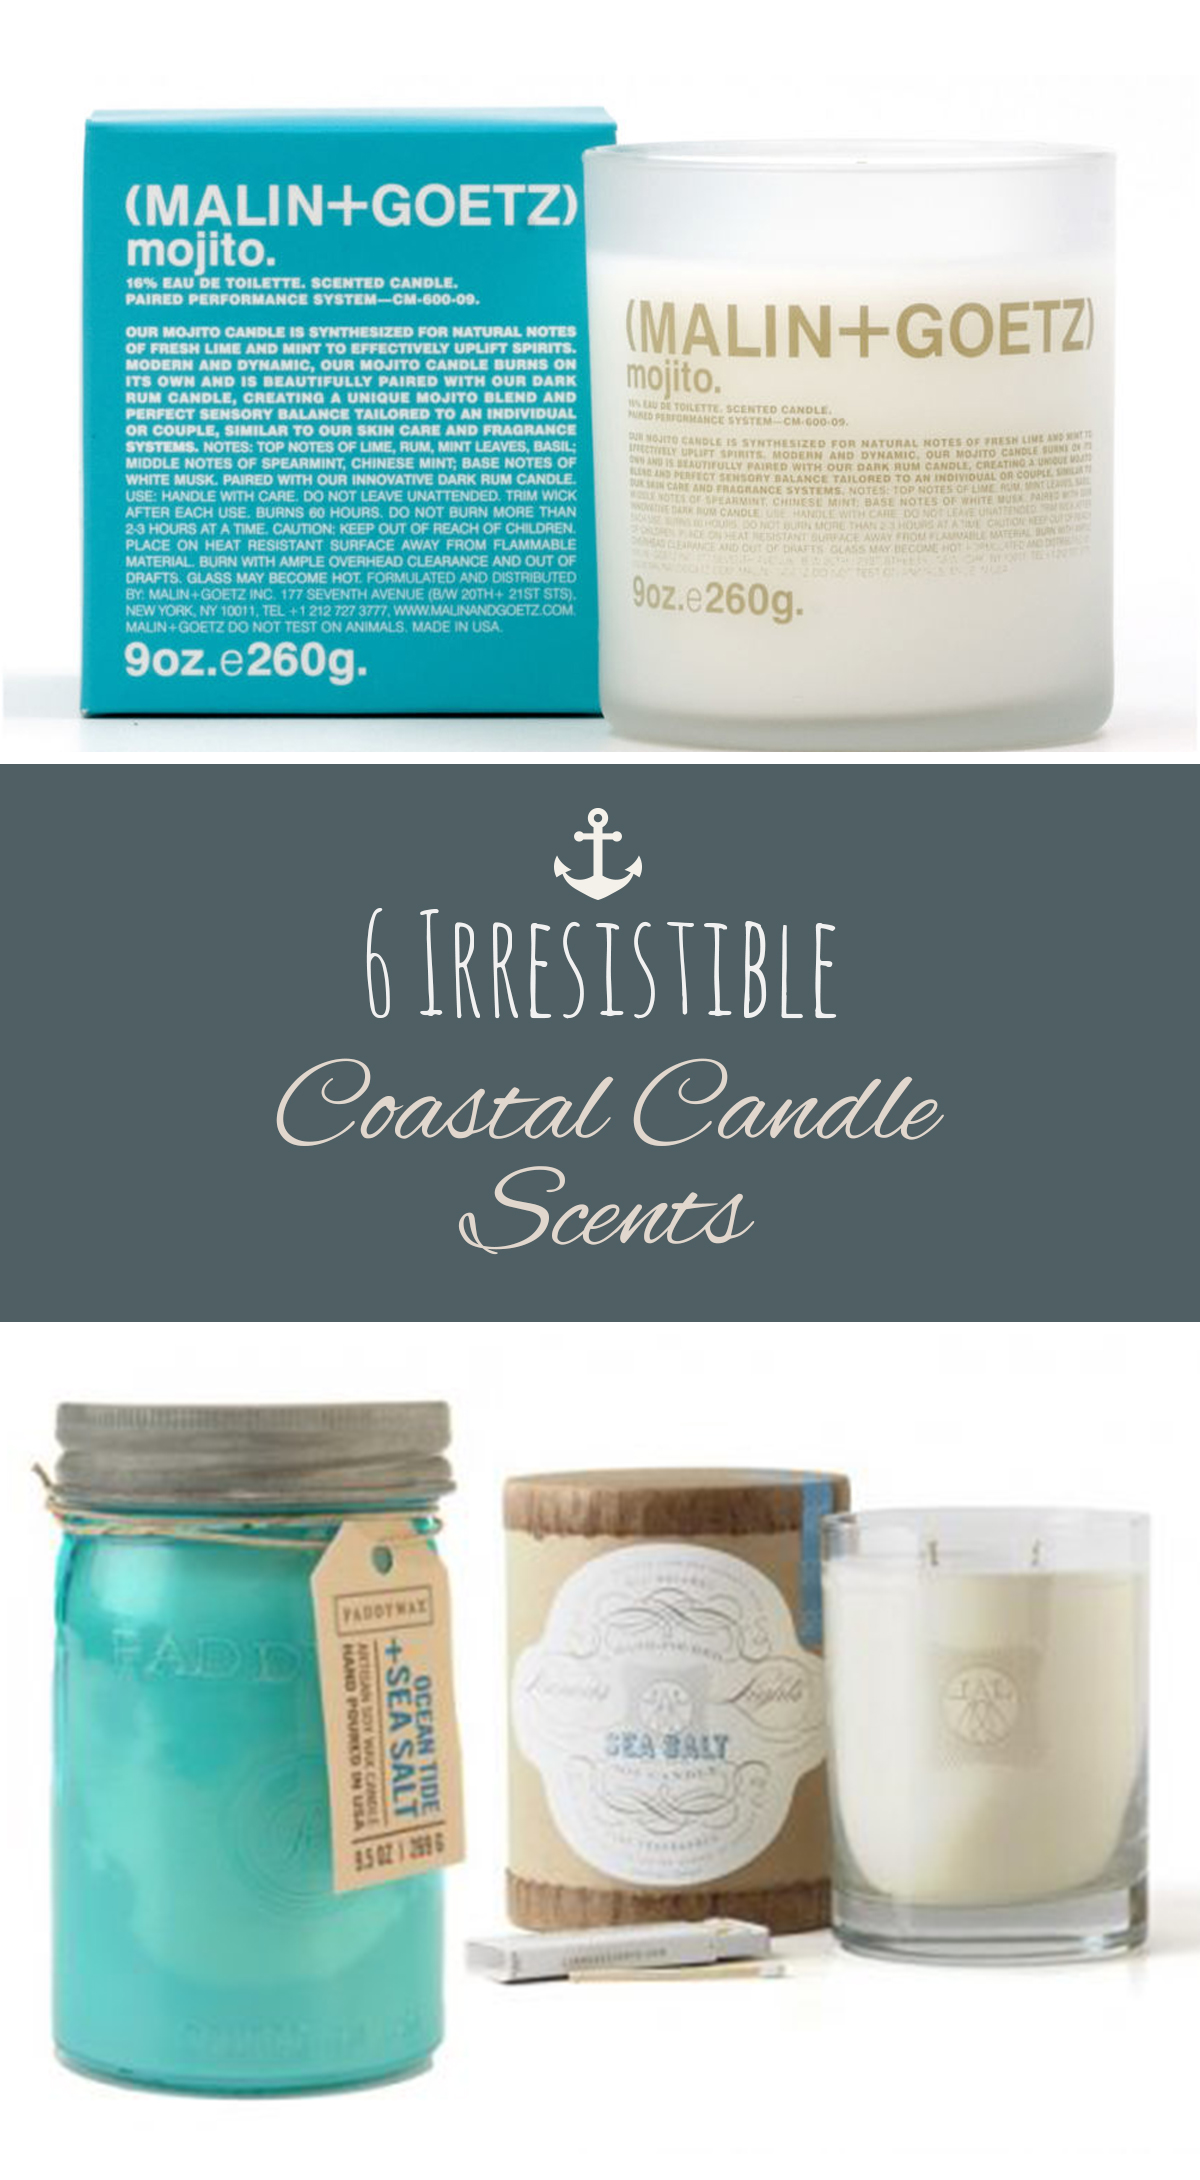 Coastal Candles, Coastal Home Decor, Home Decor, DIY Coastal Decor, Home Decor, Coastal Home Decor, DIY Home, DIY Home Decor, Candles, DIY Candles, Popular Pin